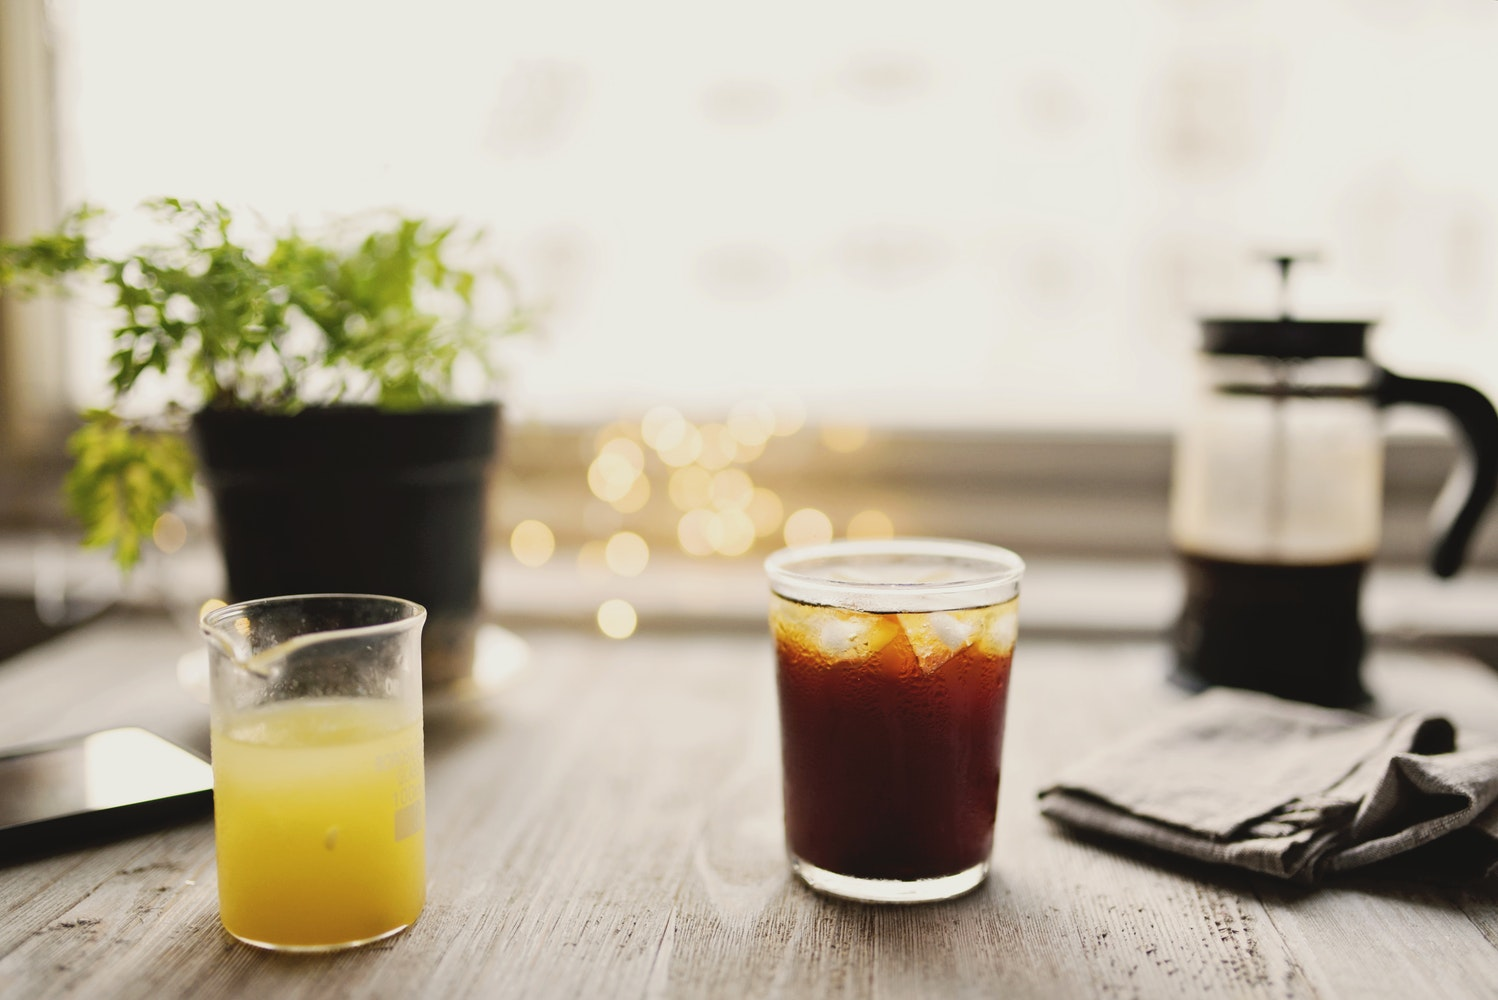 Juices | Juicing For A Cold: 3 Recipes To Boost Your Immune System